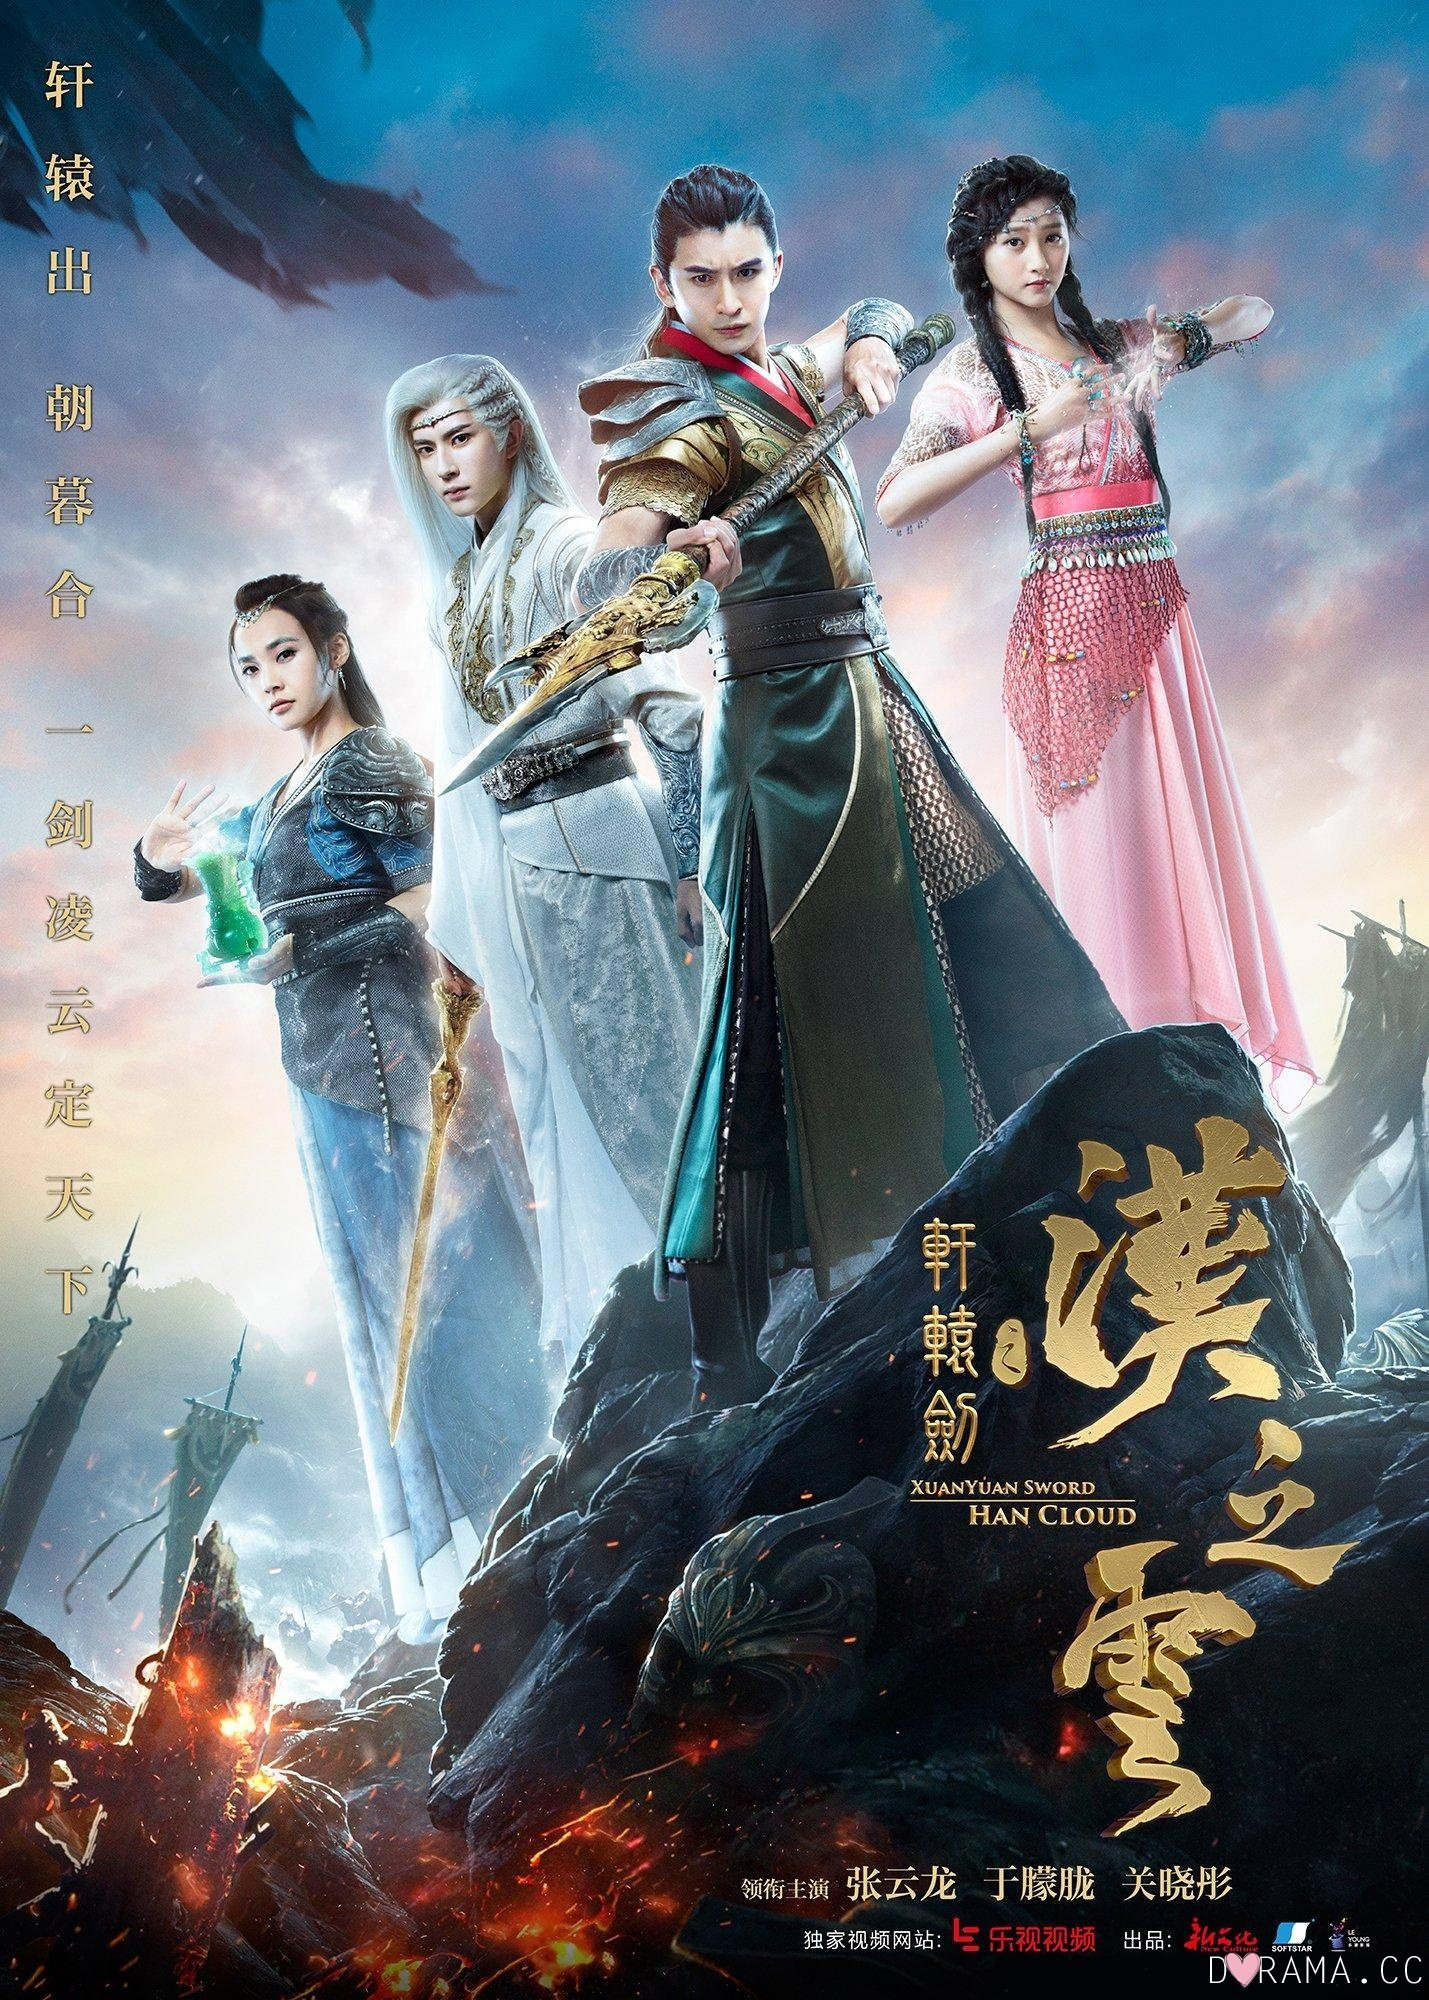 Меч Сюань Юаня: Легенда об облаках Хань | Xuan Yuan Sword Legend: The Clouds of Han | Xuan Yuan Jian Zhi Han Zhi Yun